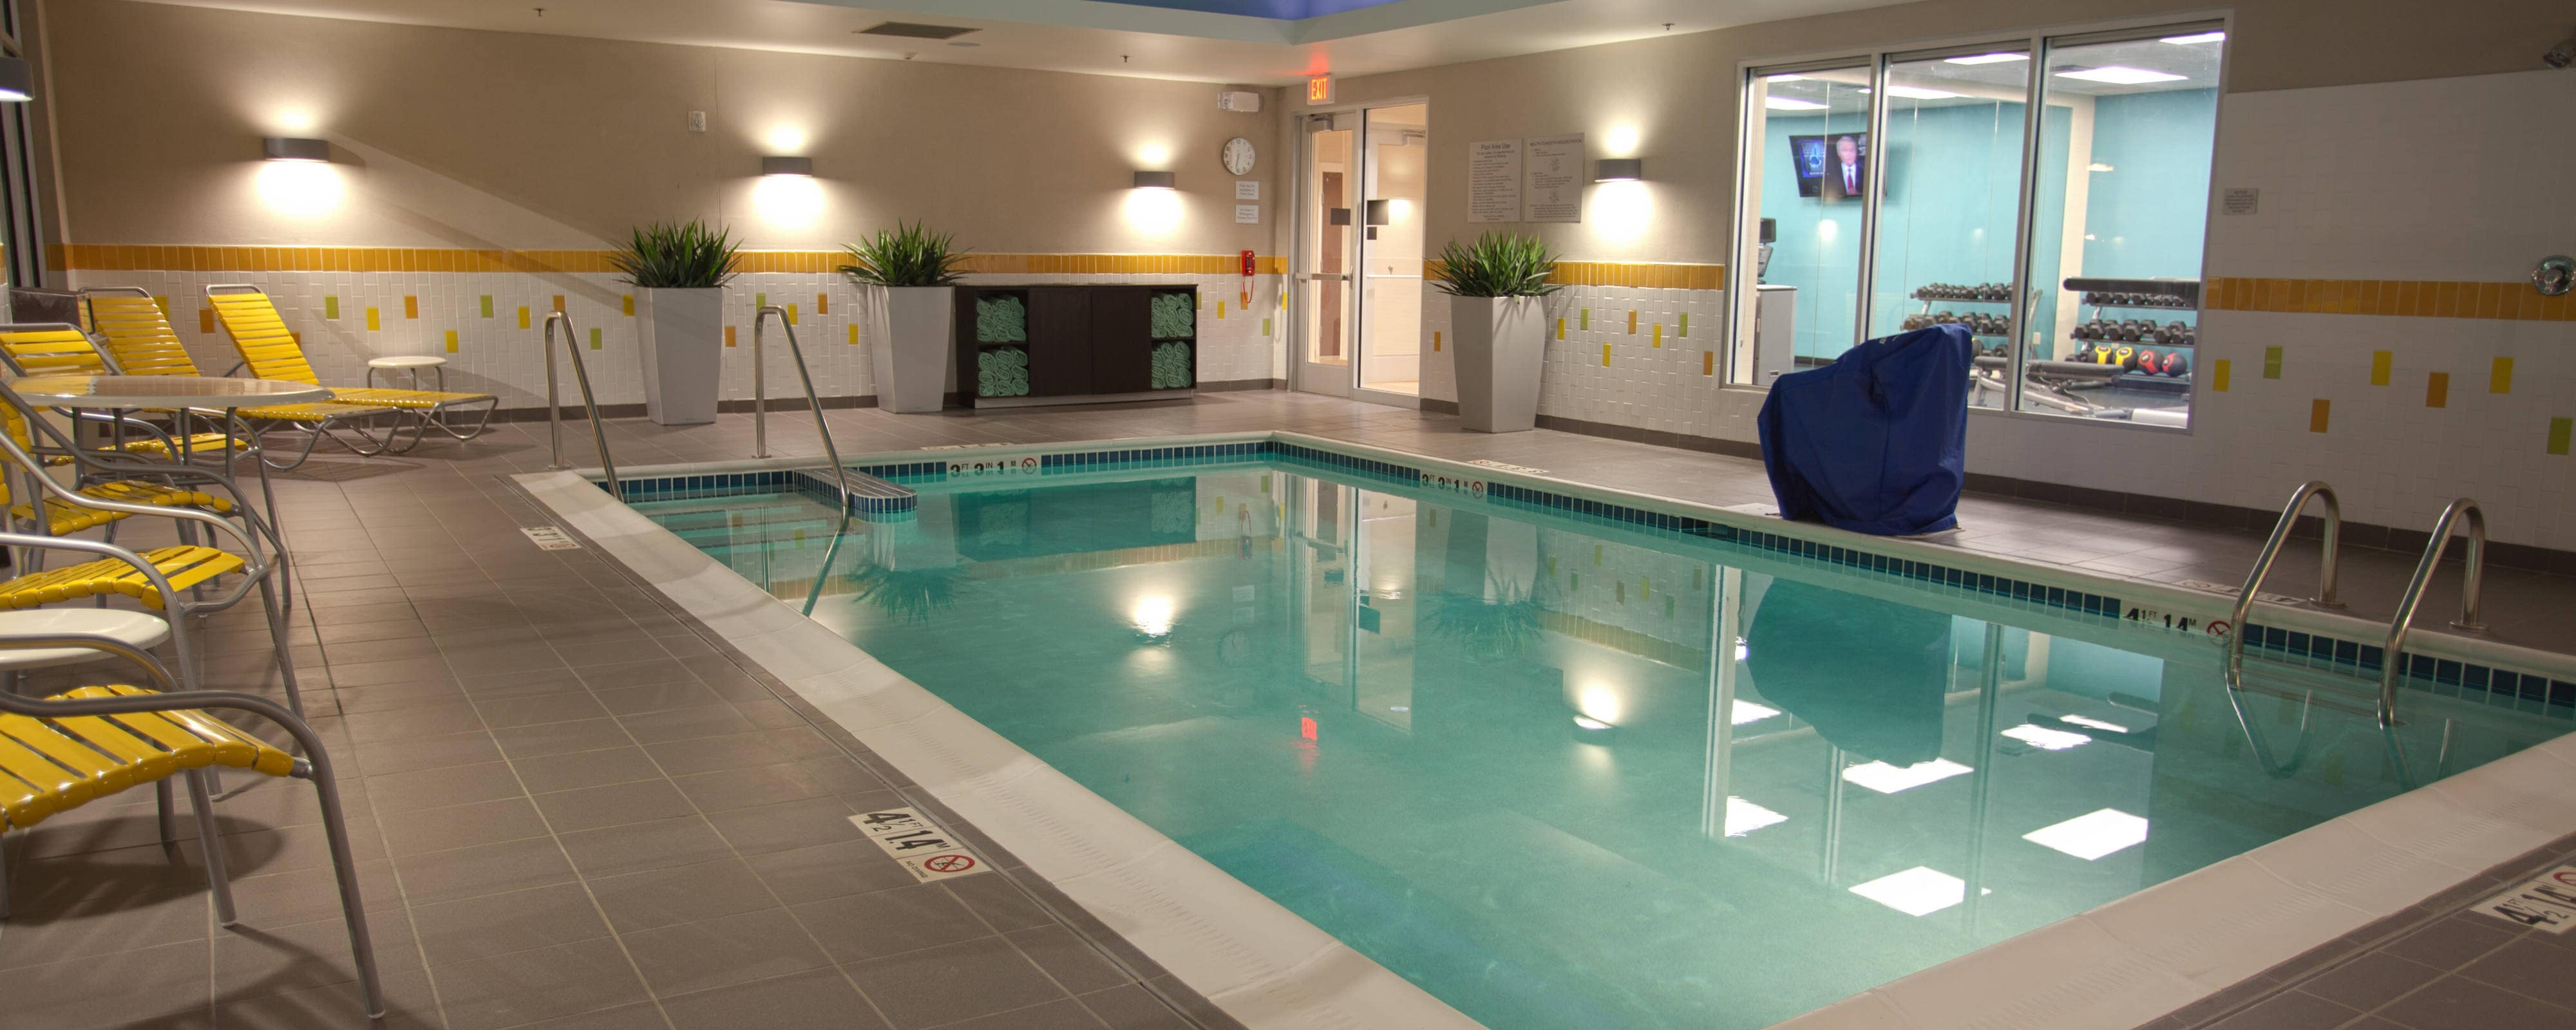 Fairfield Inn Columbus Airport Swimming Pool